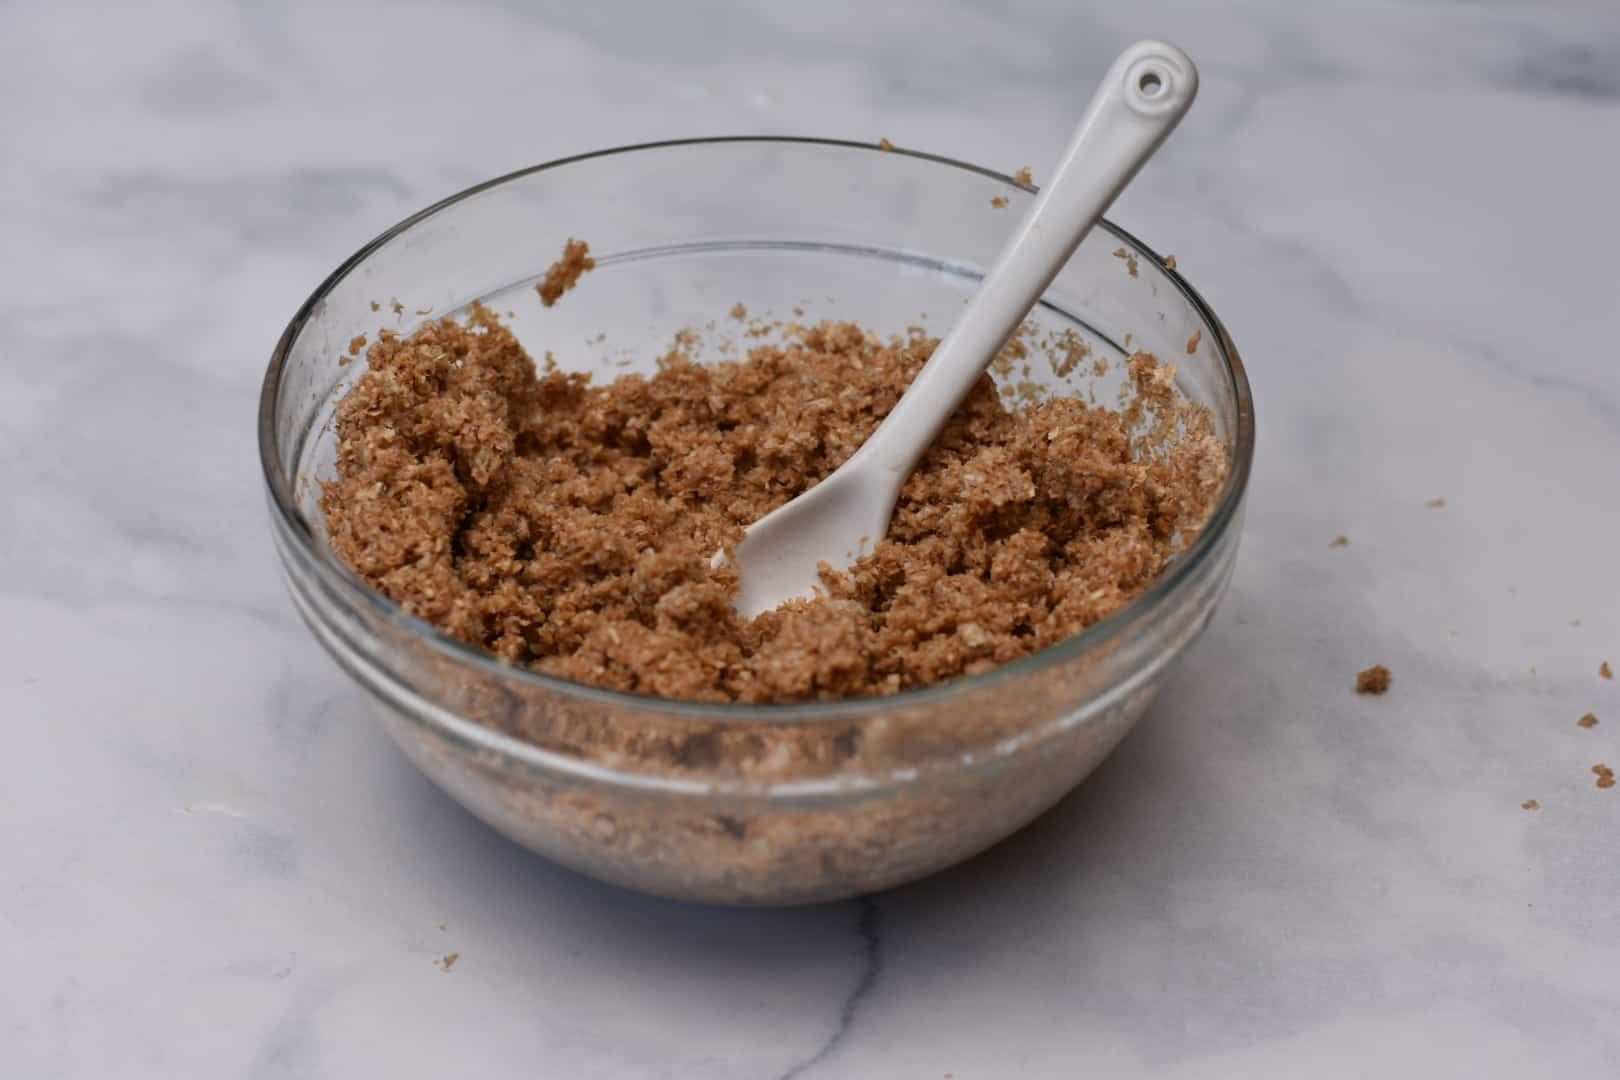 skim milk and oat bran mixed together in bowl with white spoon